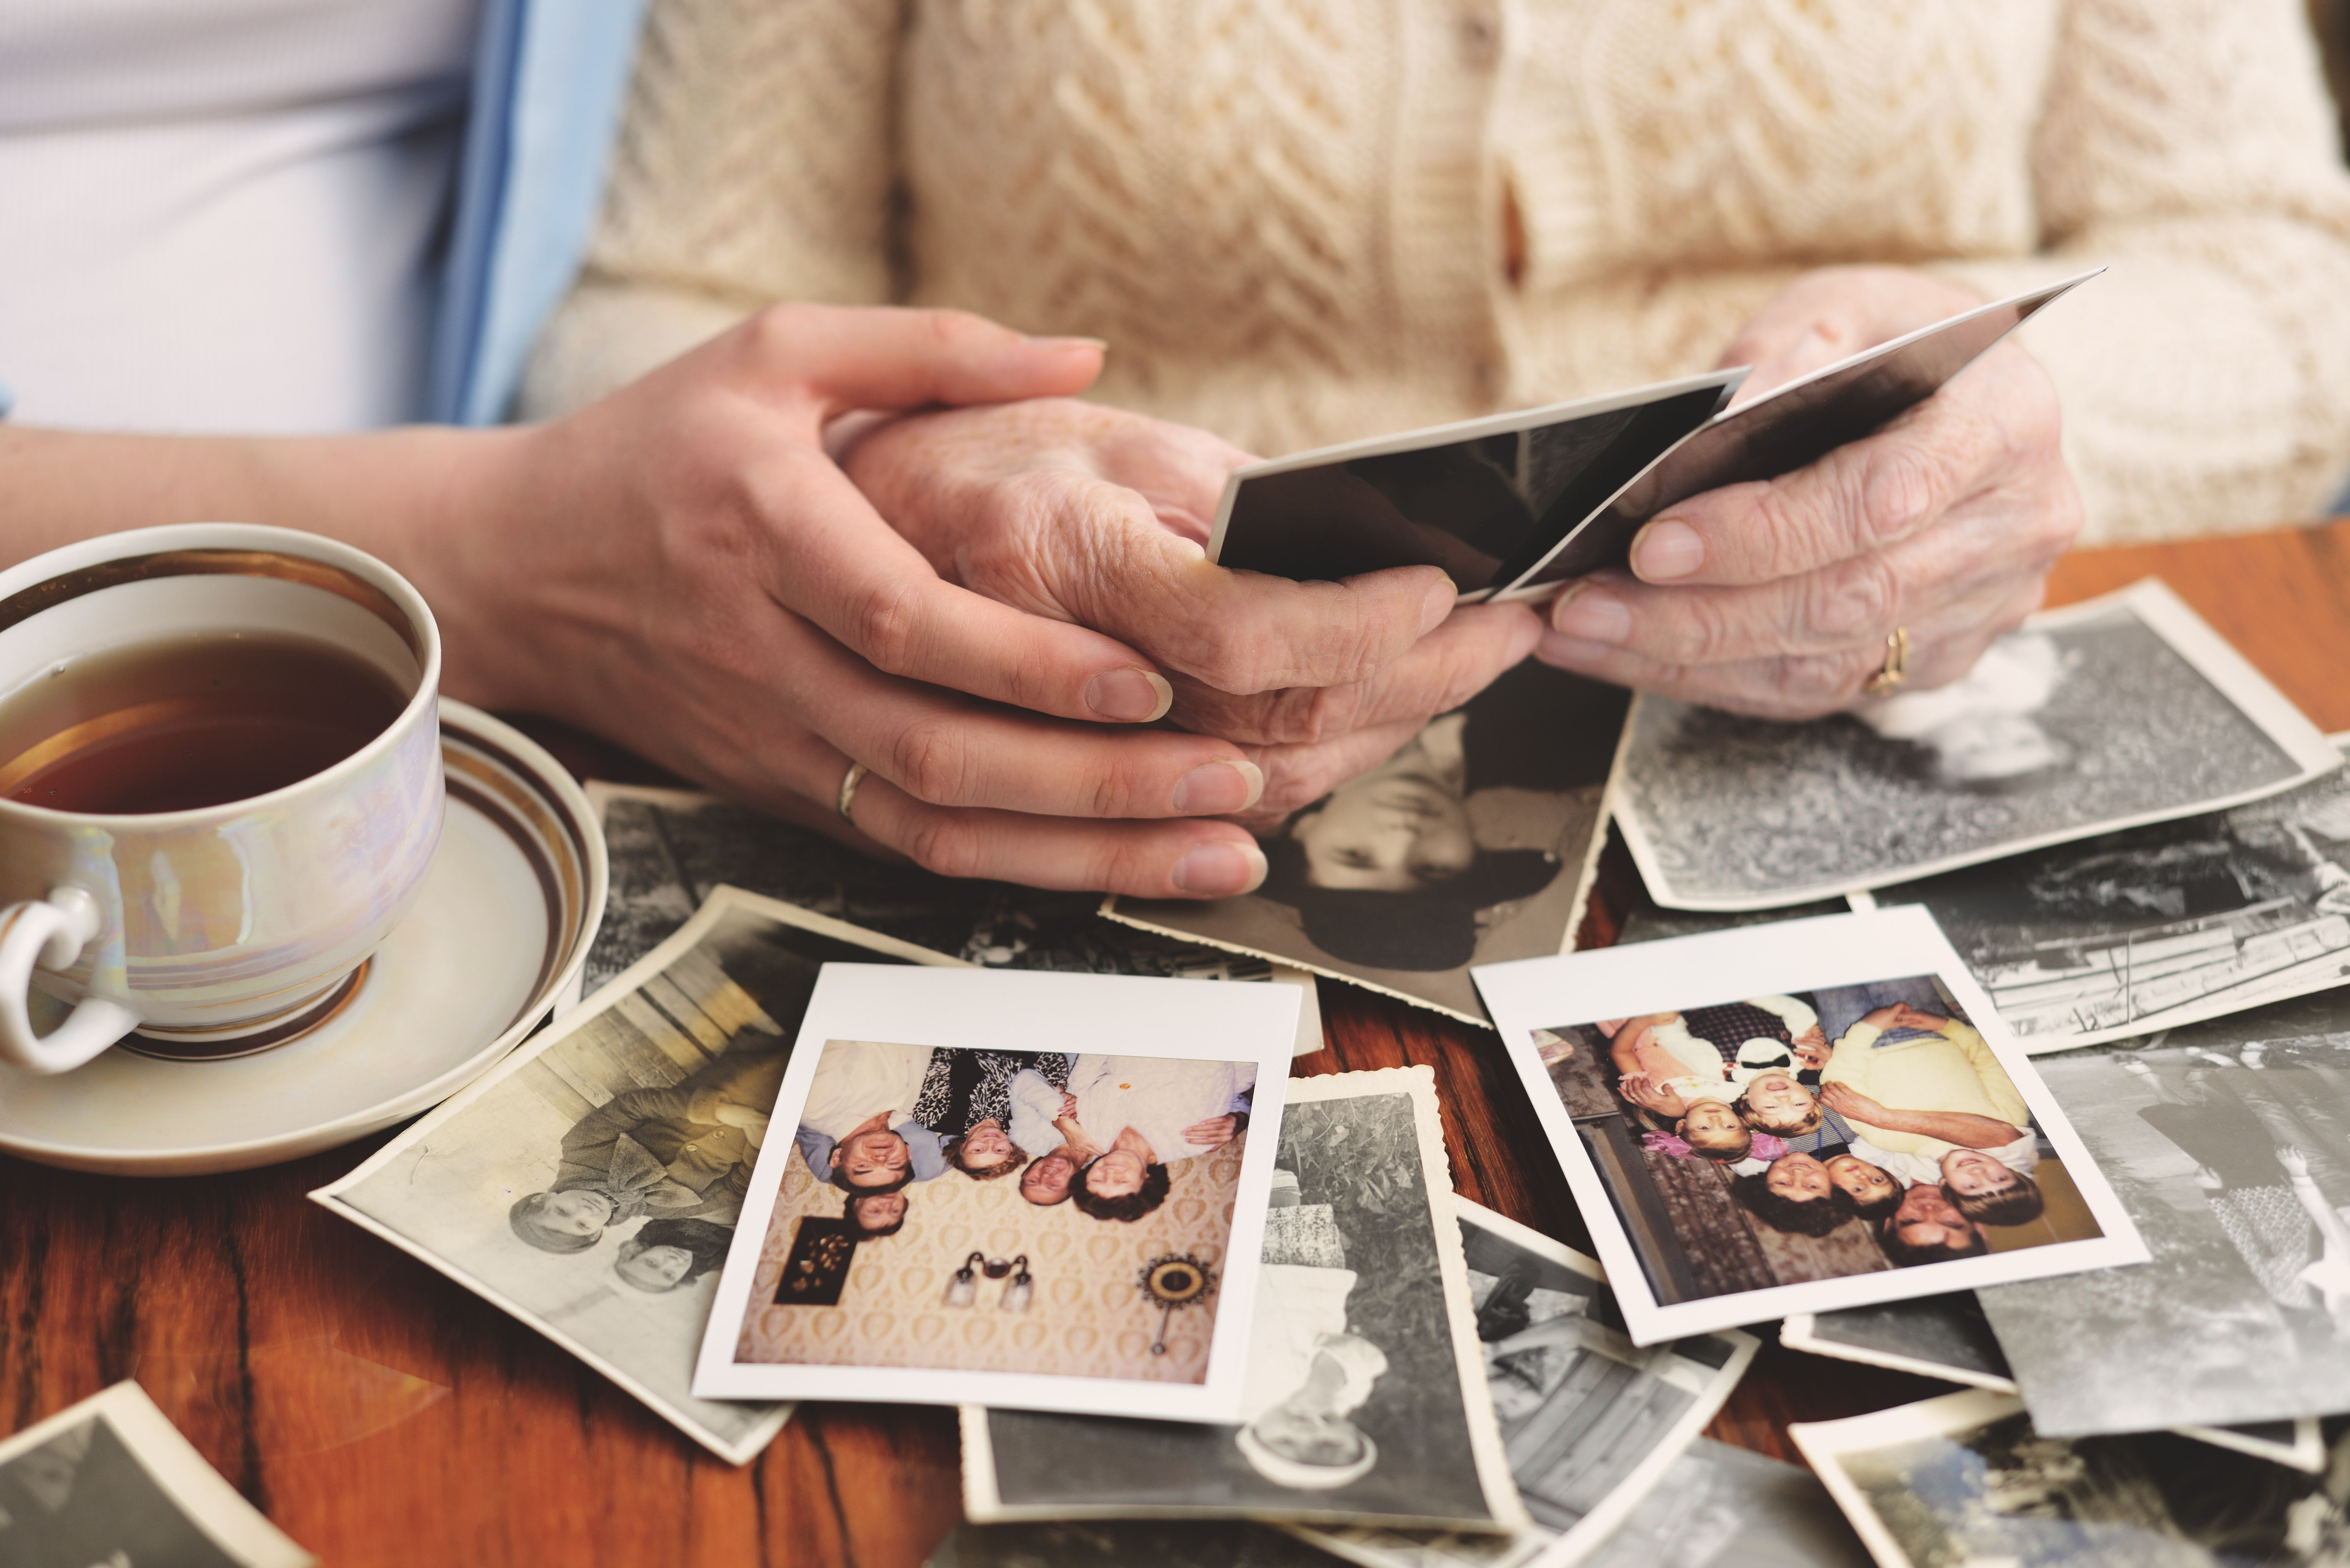 Senior woman and granddaughter sitting at table, looking through old photographs, mid section